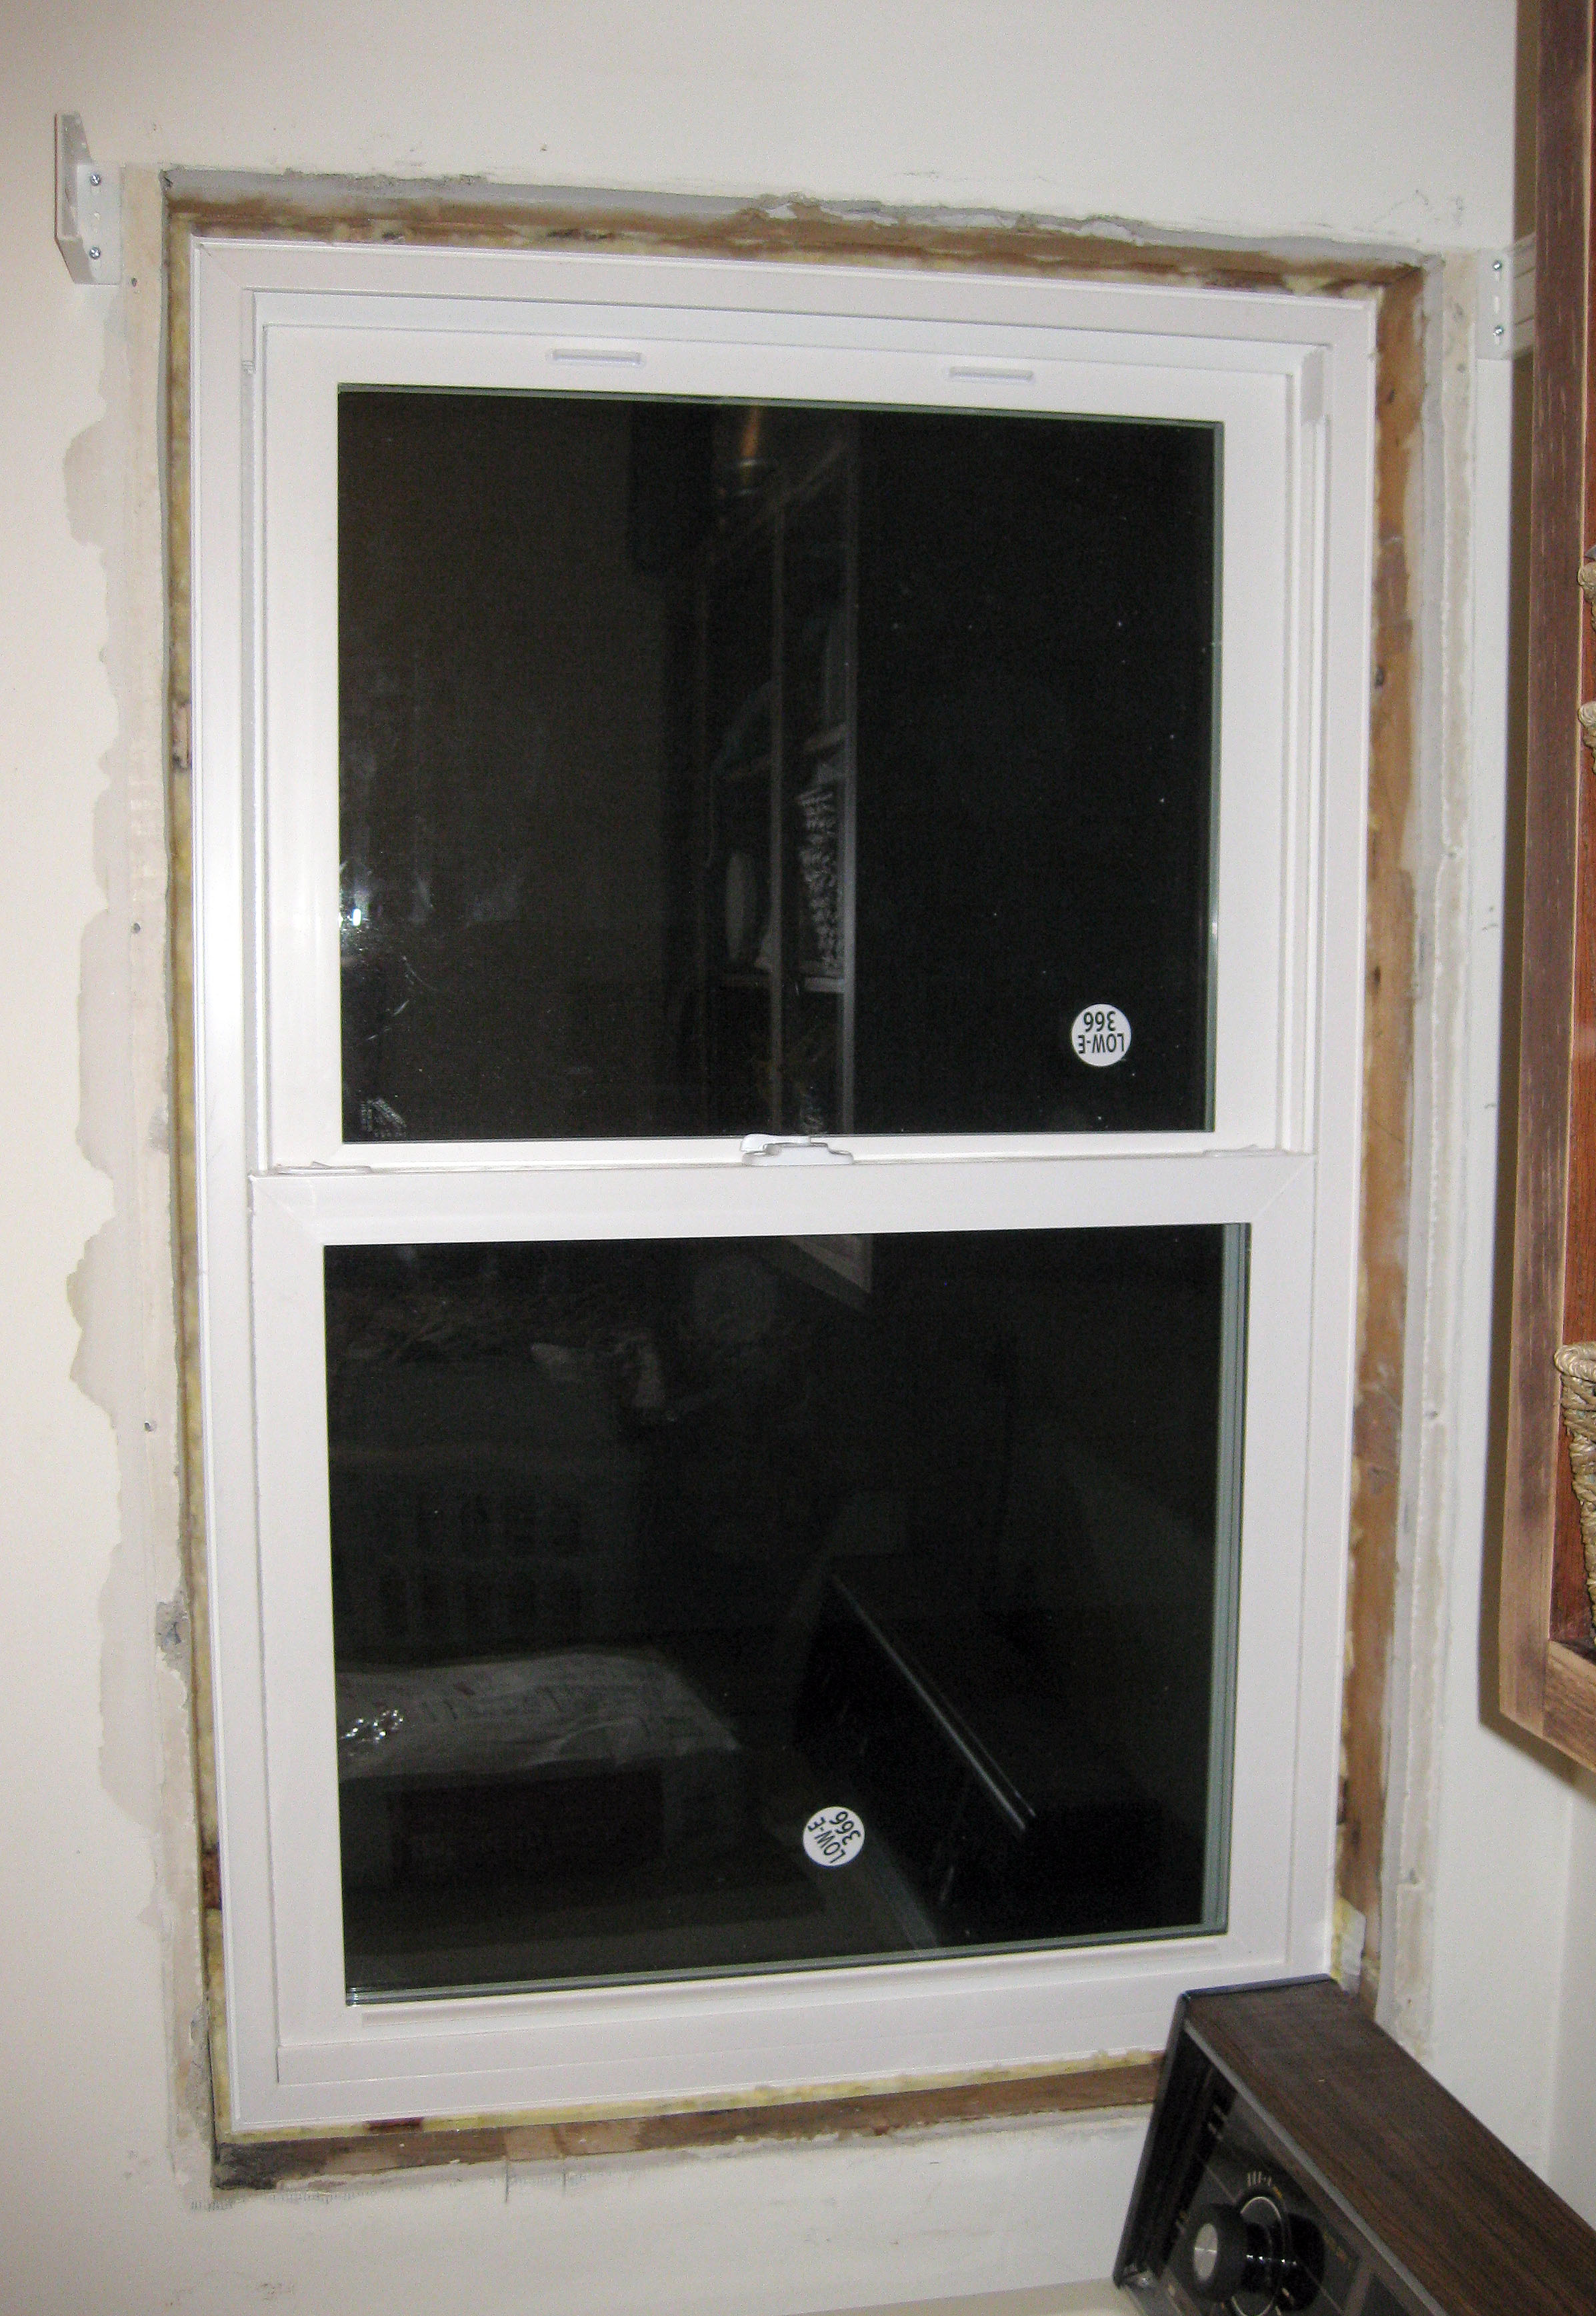 Window at night from inside - Now